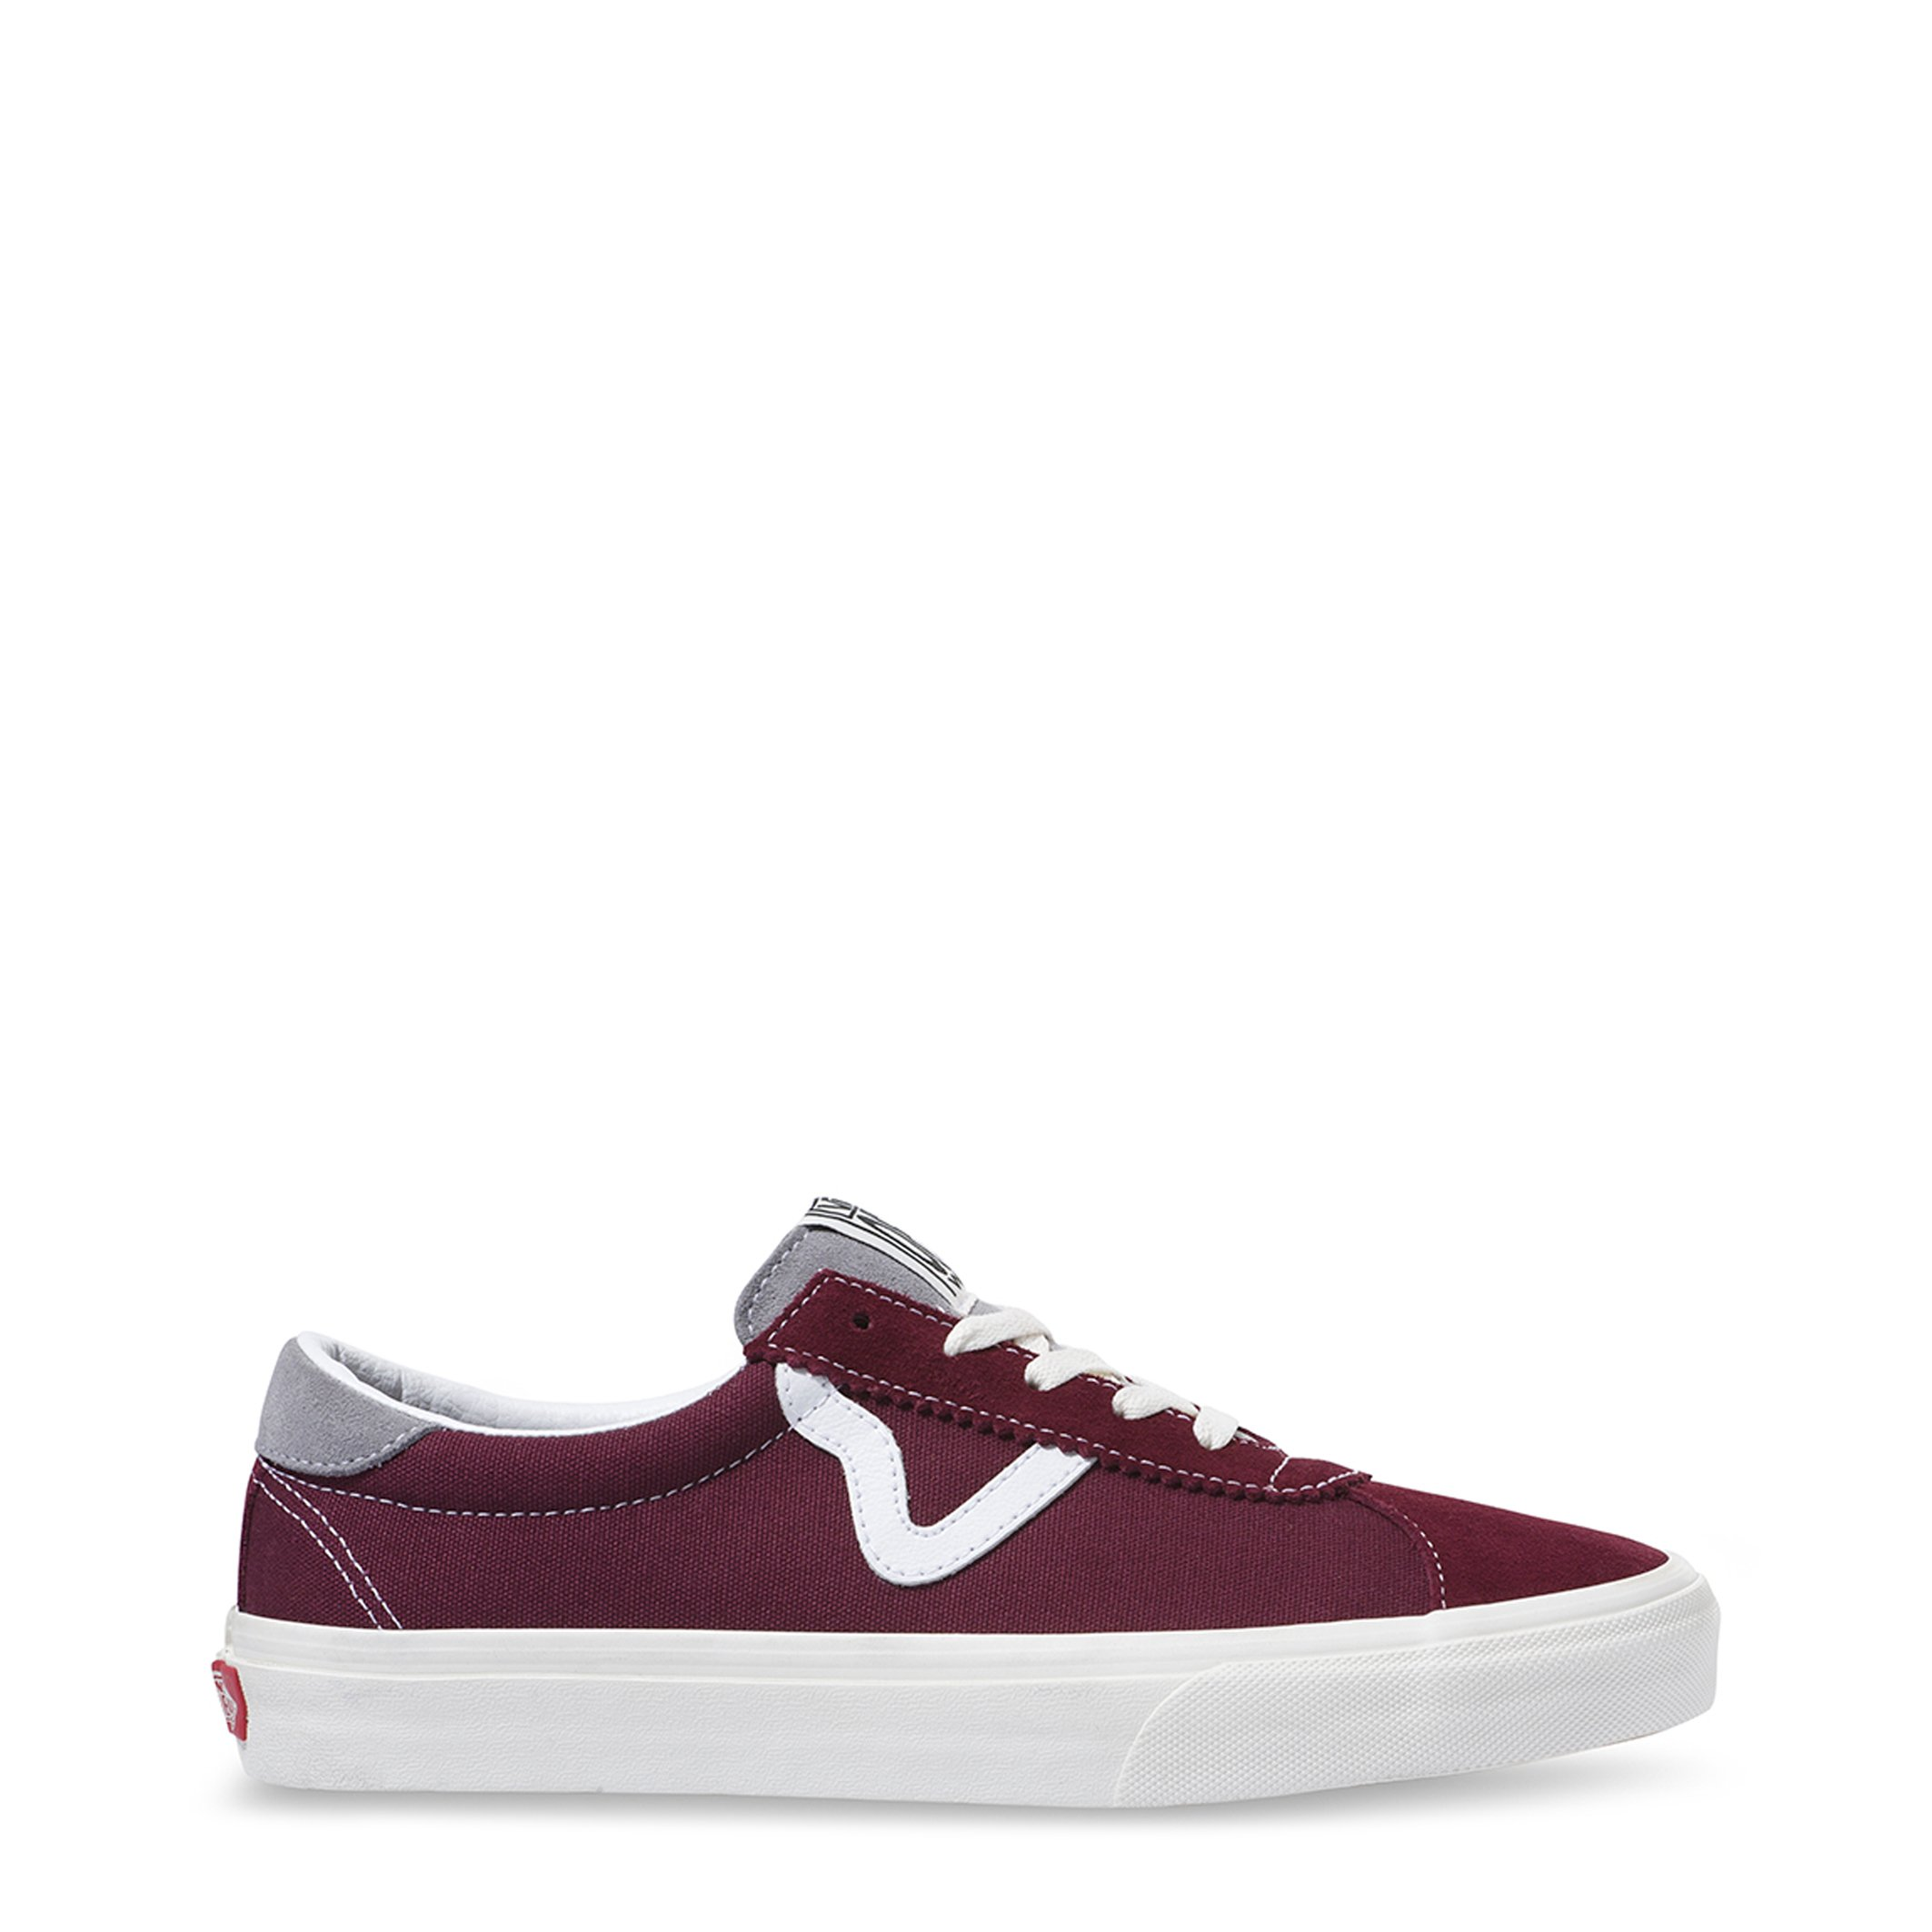 Vans Men's Trainers Various Colours SPORT_VN0A4BU6WO31 - red US 9